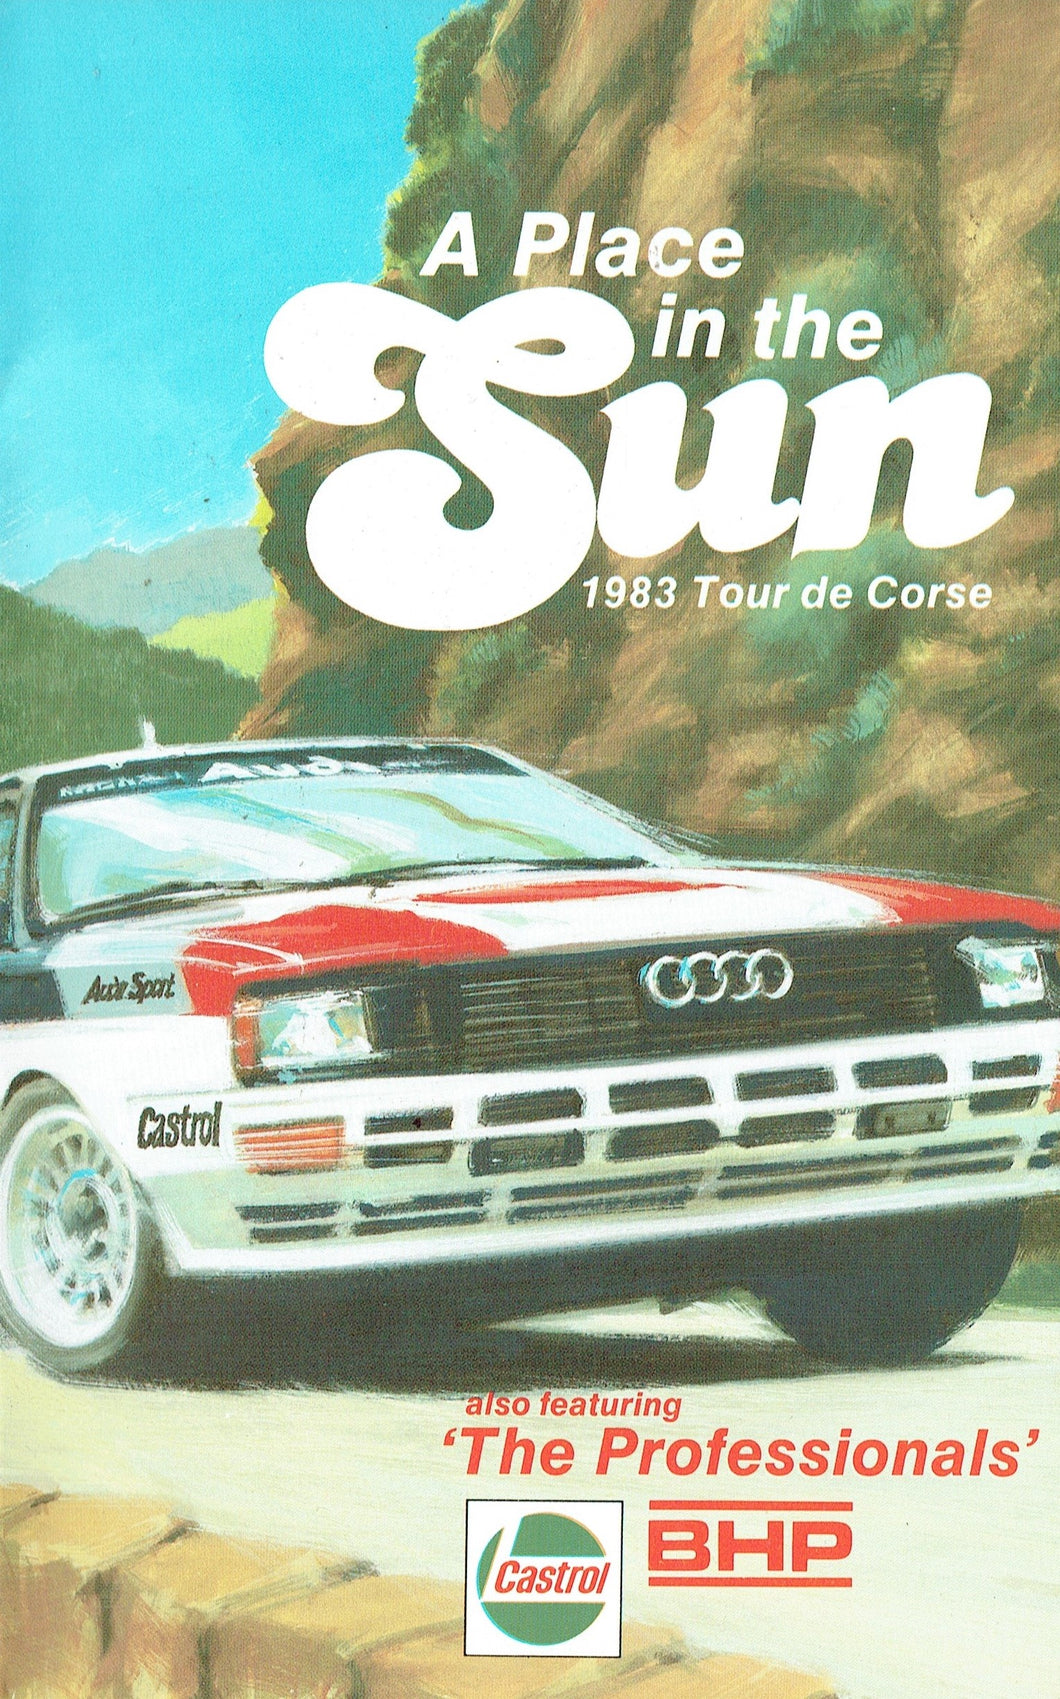 A Place in the Sun: 1983 Tour de Corse - also featuring 'The Professionals' - World Rally Championship/F1 [VHS